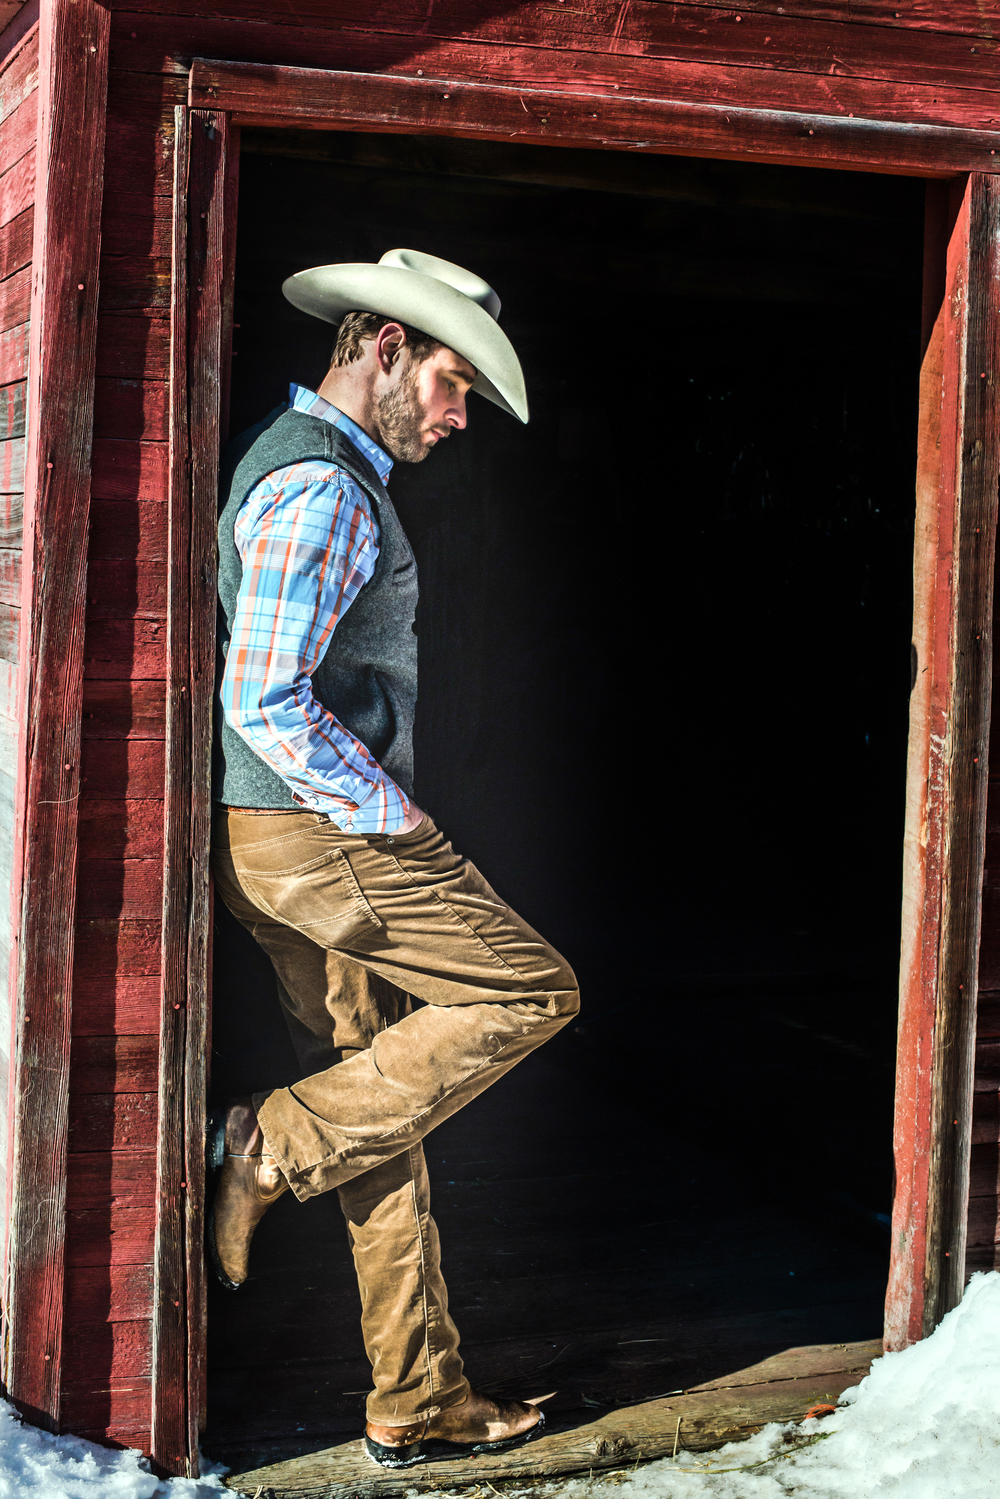 """The Cowboys and Ranchers that make a go at a life out here represent the values I admire most: hard work, integrity, and character."" Josh Myers ~"